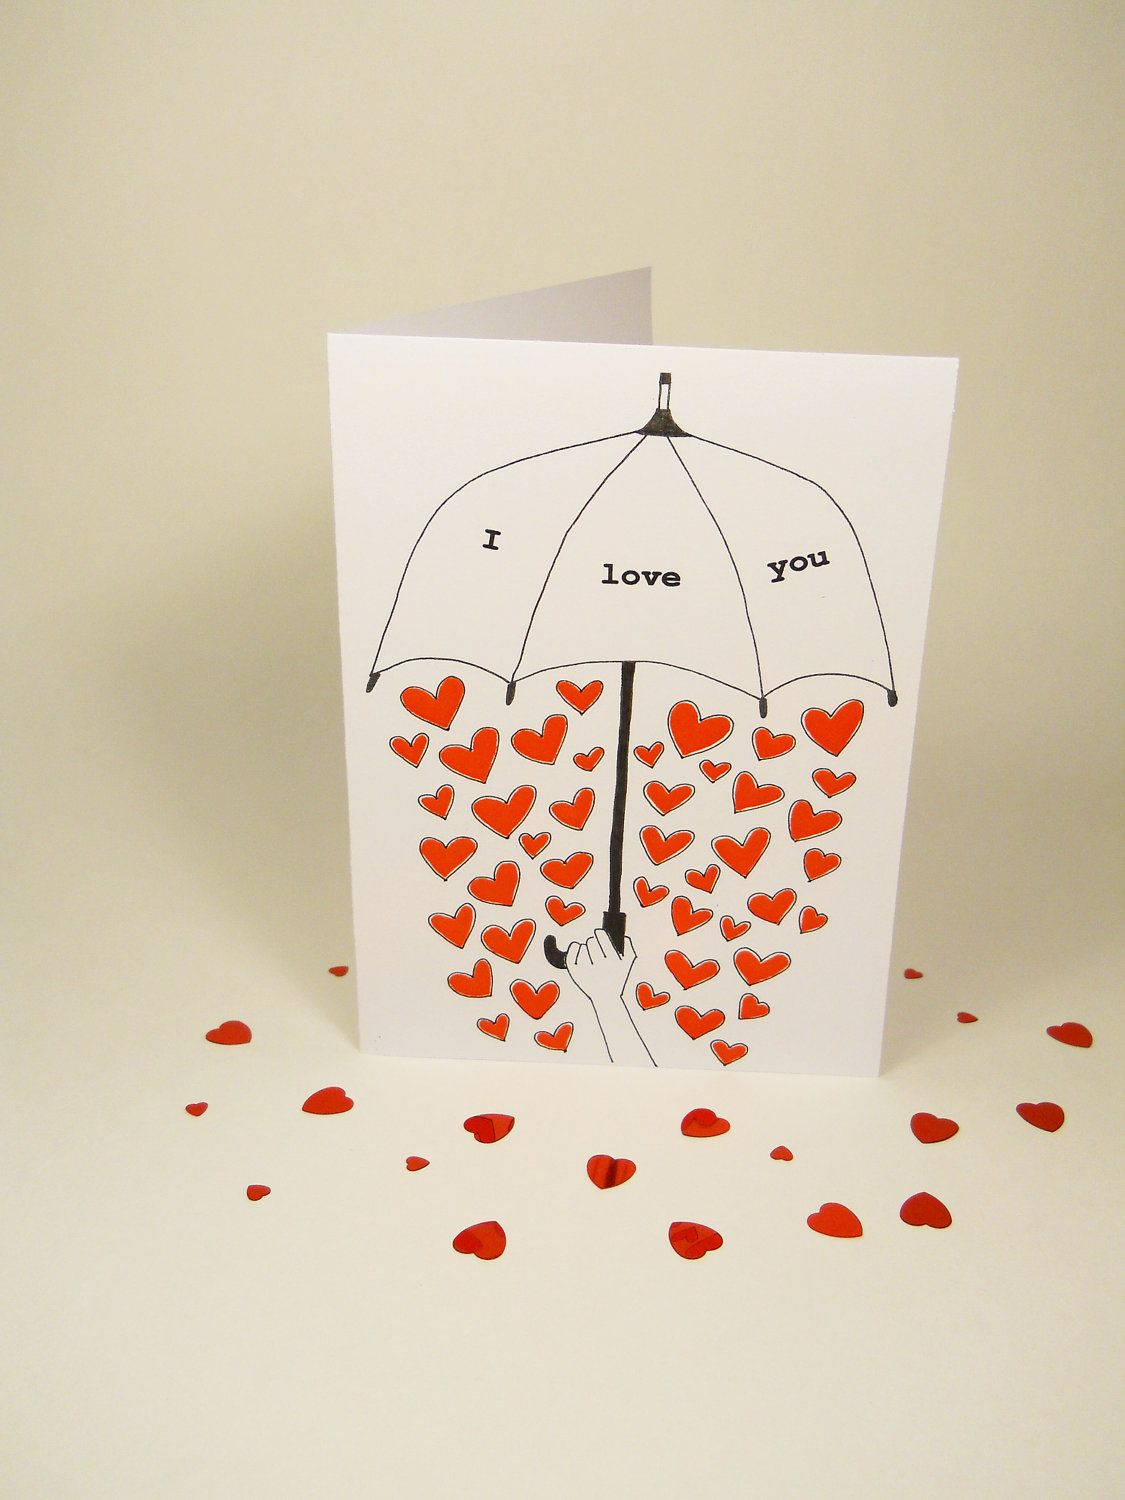 Valentines Day card - Love umbrella card - i love you - hand drawn